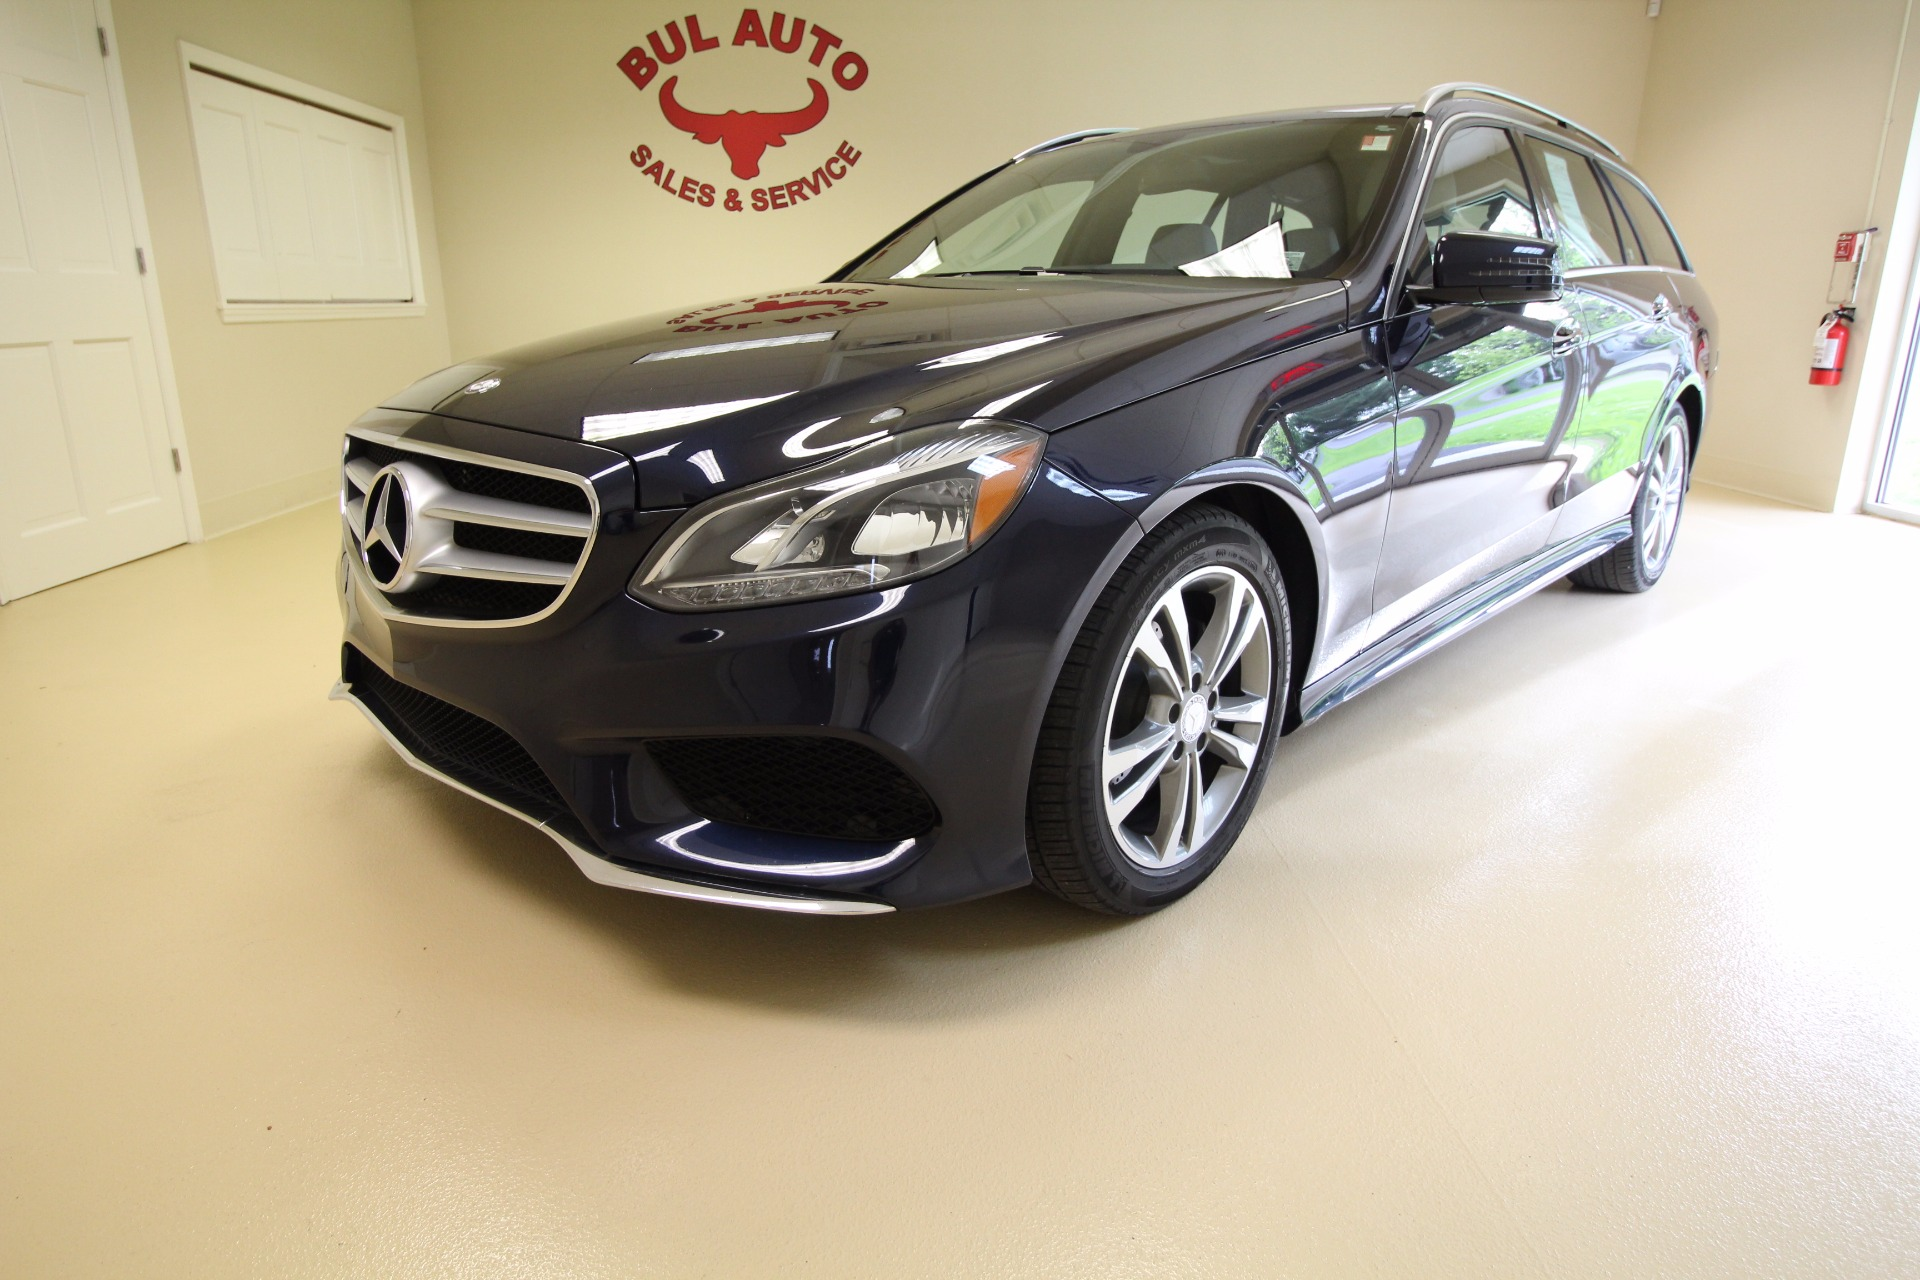 2014 mercedes benz e class wagon e350 4matic wagon stock 17117 for sale near albany ny ny. Black Bedroom Furniture Sets. Home Design Ideas